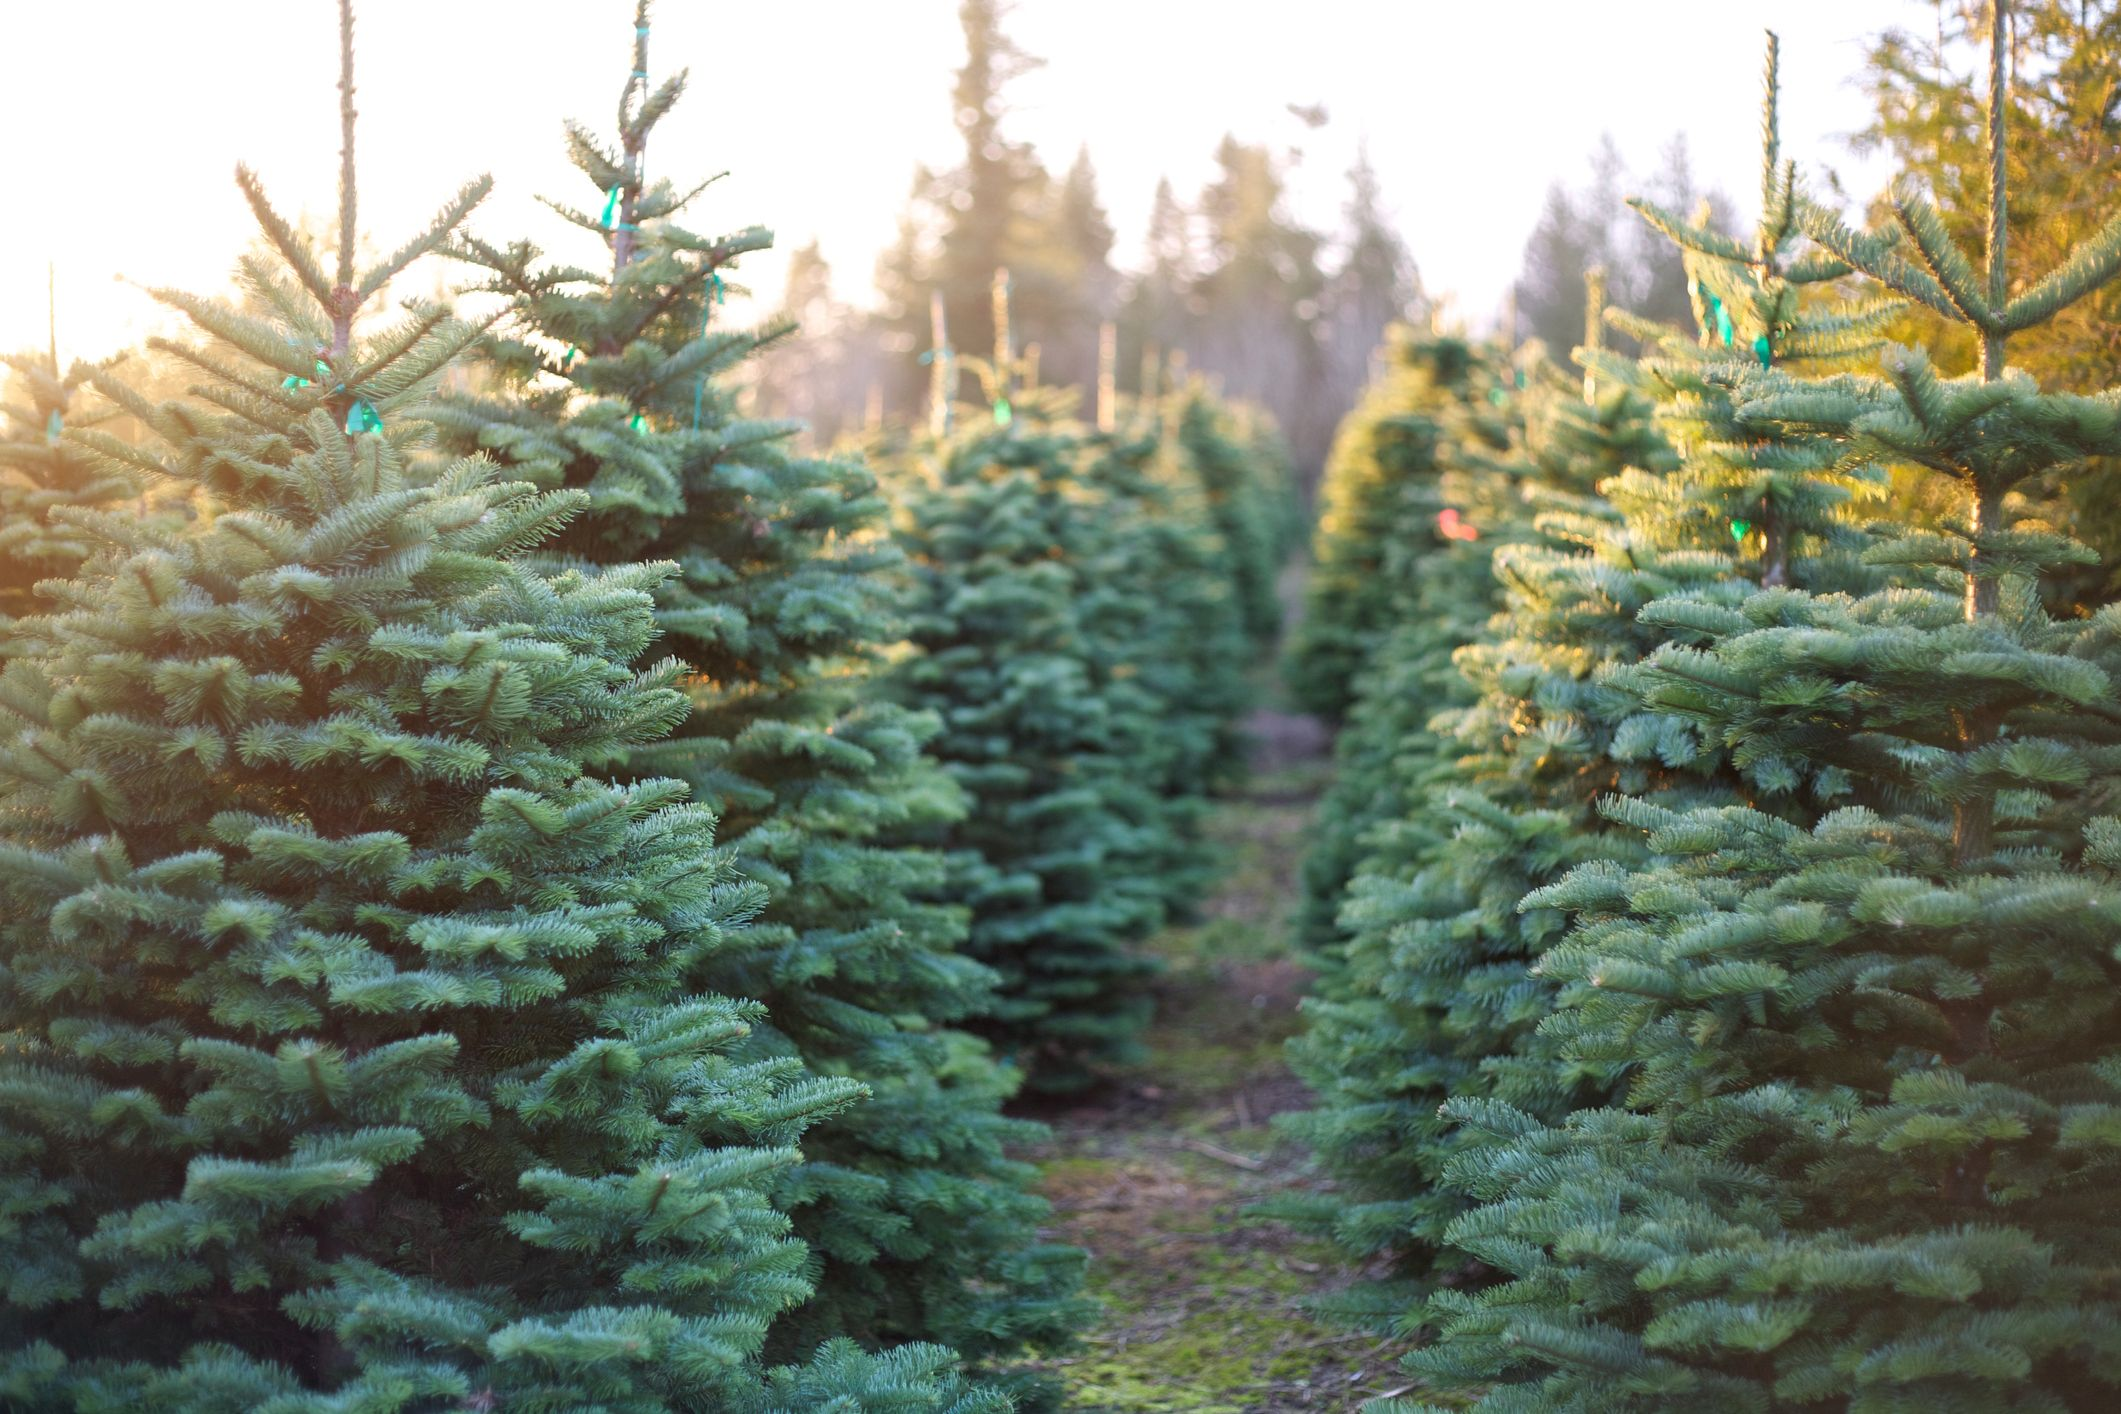 The crucial steps you need to follow after buying a real Christmas tree